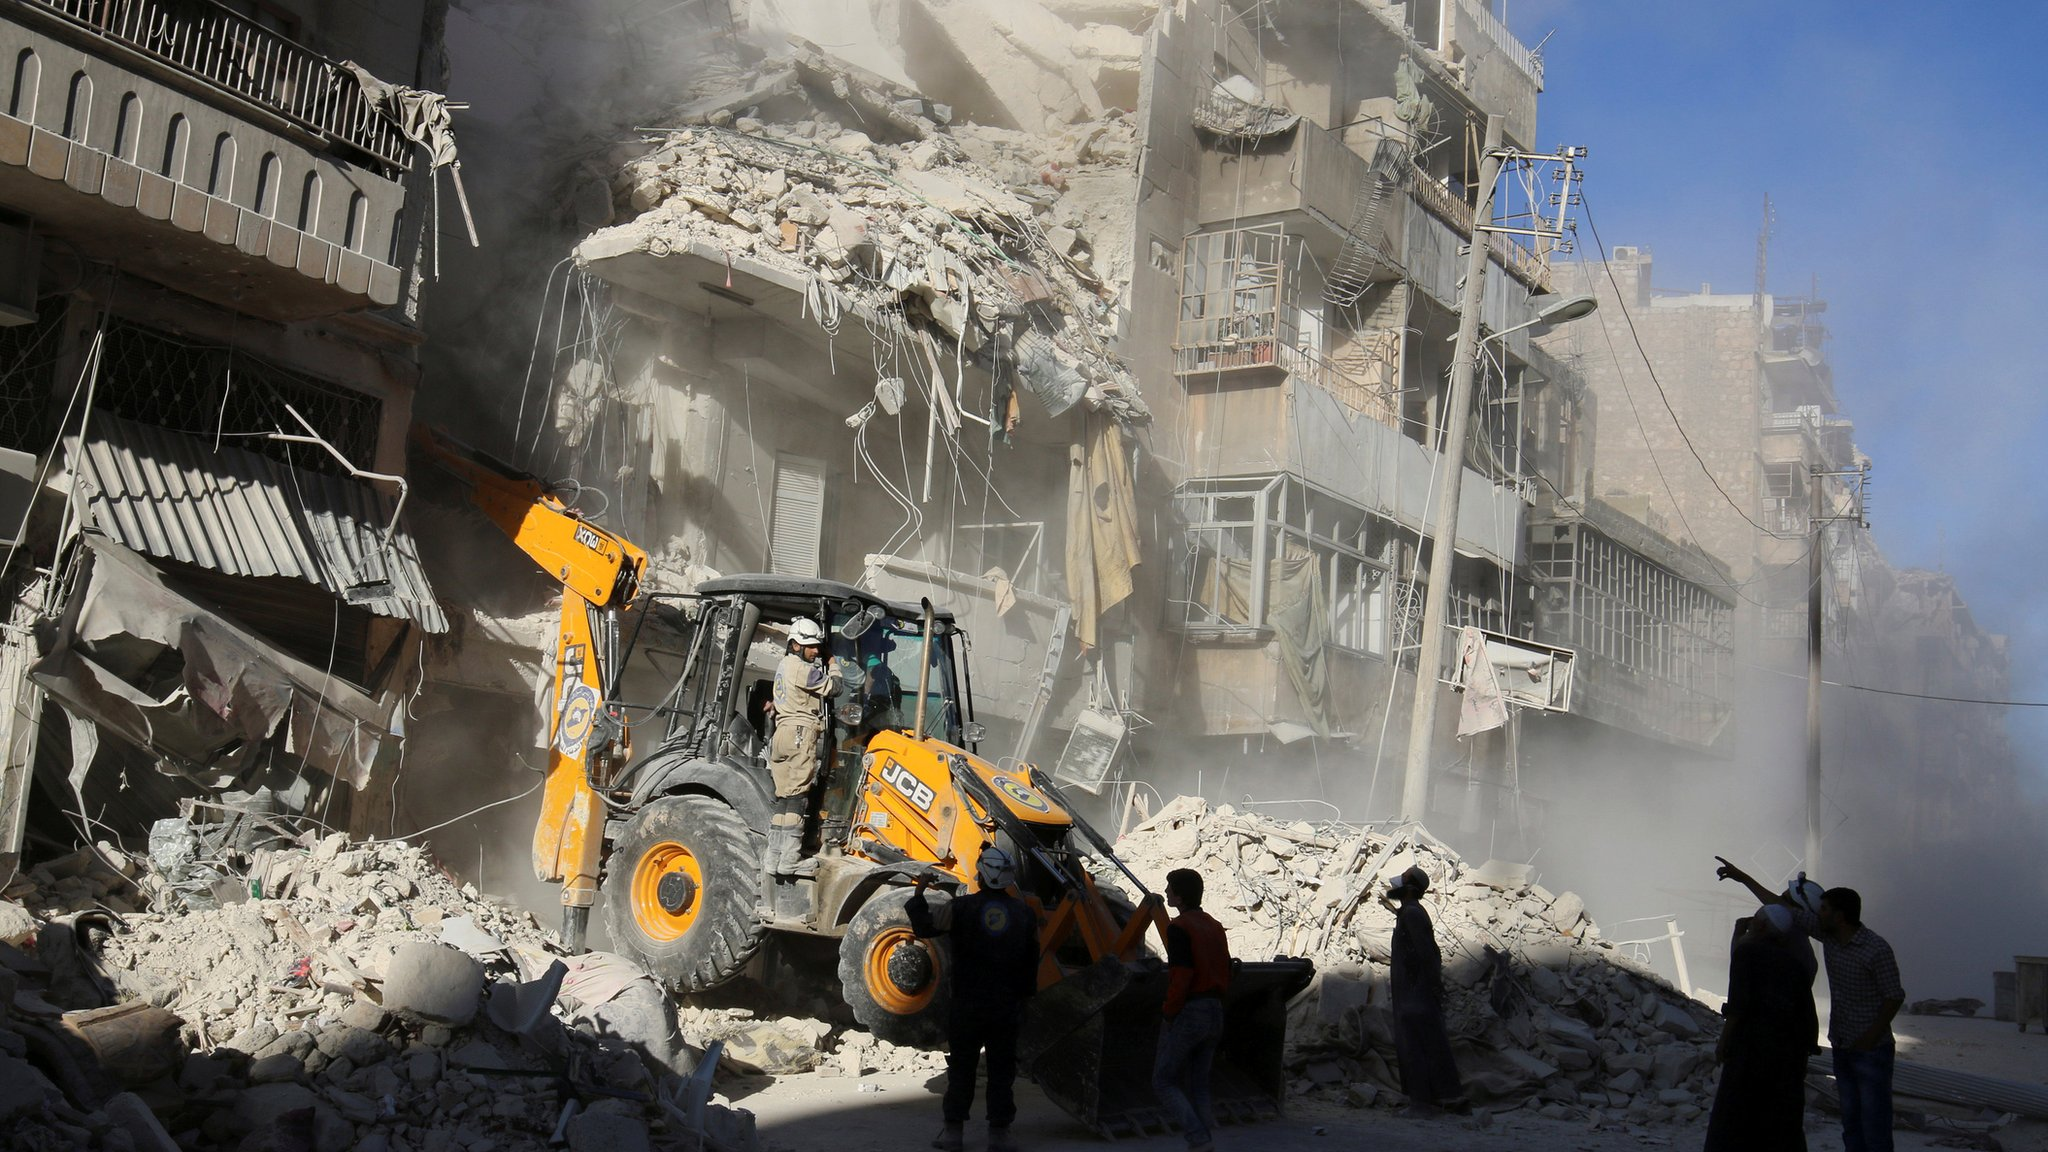 Syria conflict: US accuses Russia of 'barbarism' in Aleppo